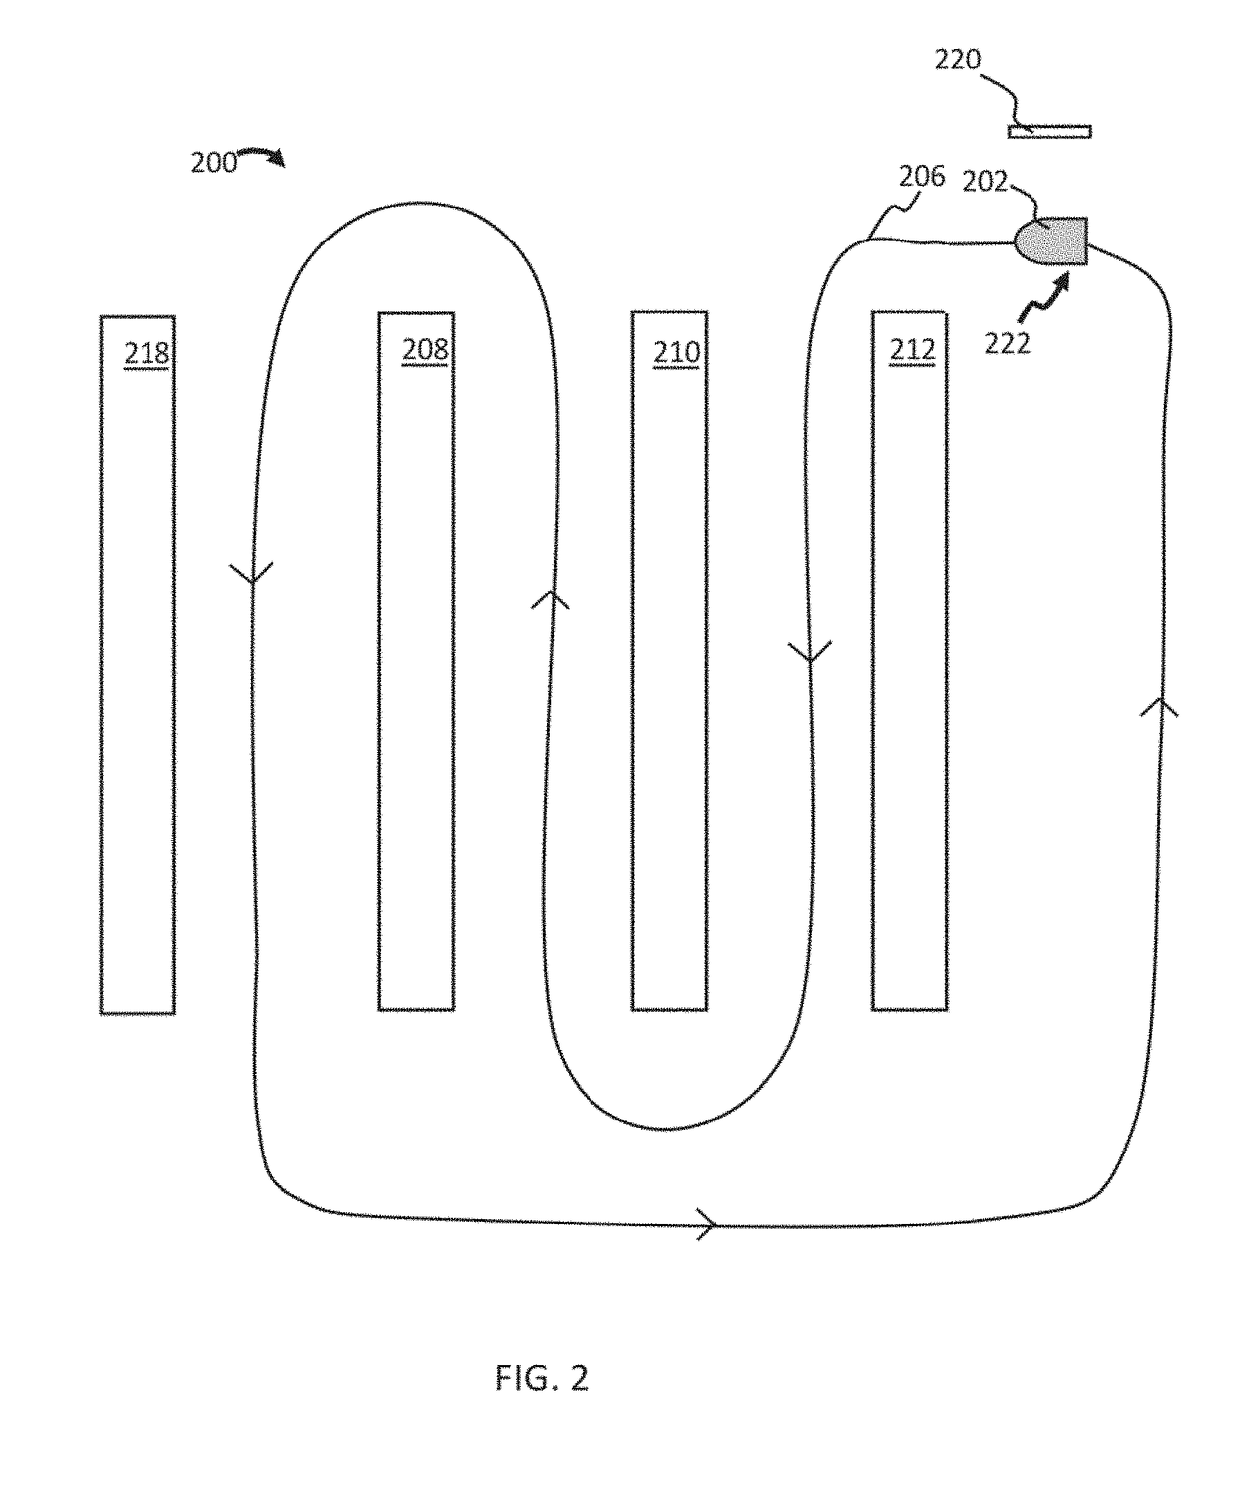 Patent Report: | US20180120116A1 | Robotic Mapping